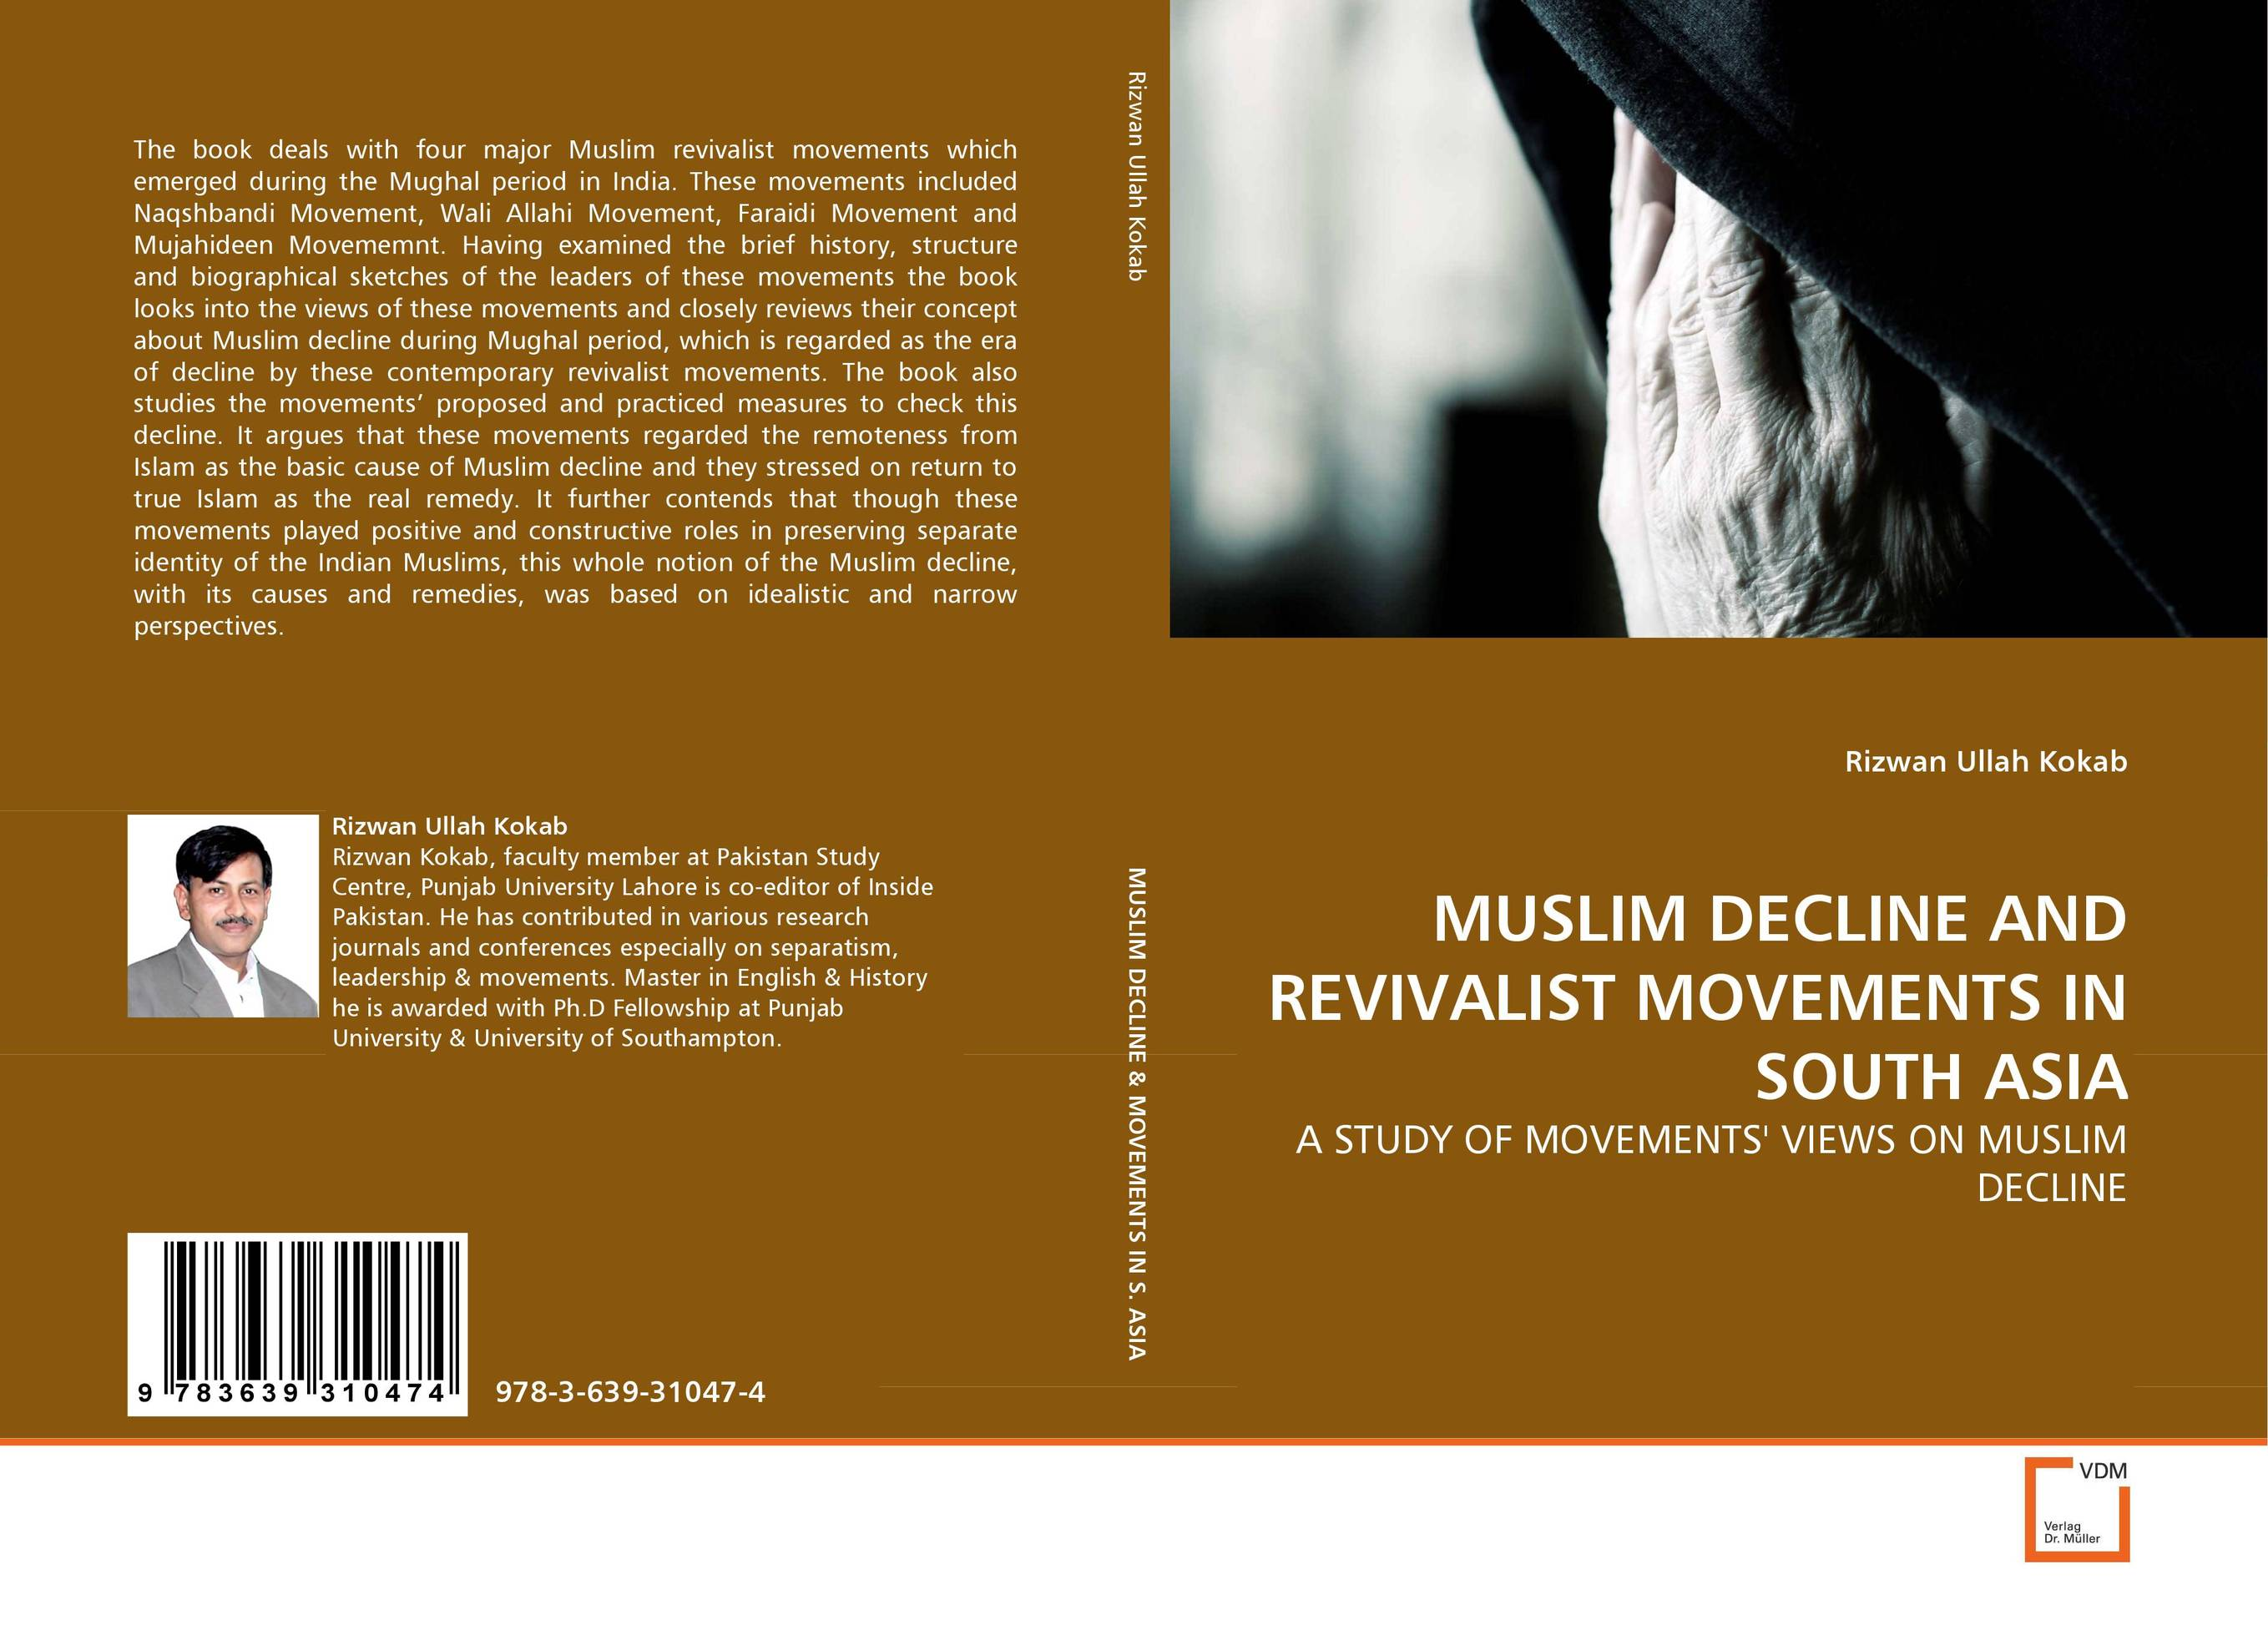 MUSLIM DECLINE AND REVIVALIST MOVEMENTS IN SOUTH ASIA brenner muslim identity